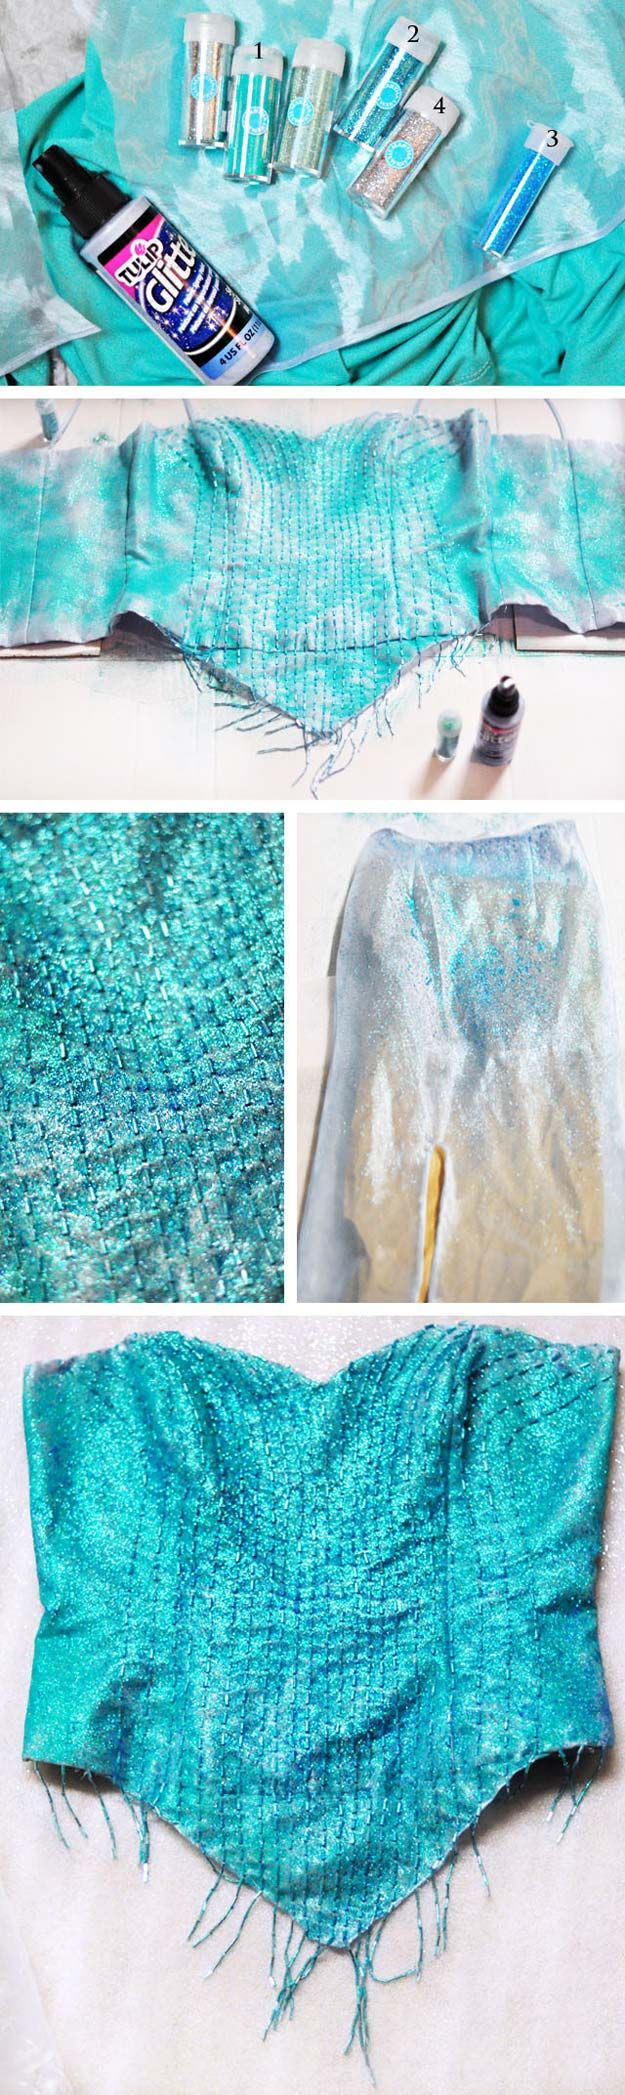 Best Last Minute DIY Halloween Costume Ideas - Frozen Queen Elsa Costume - Do It Yourself Costumes for Teens, Teenagers, Tweens, Teenage Boys and Girls, Friends. Fun, Clever, Cheap and Creative Costumes that Are Easy To Make. Step by Step Tutorials and Instructions http://diyprojectsforteens.com/last-minute-diy-halloween-costumes